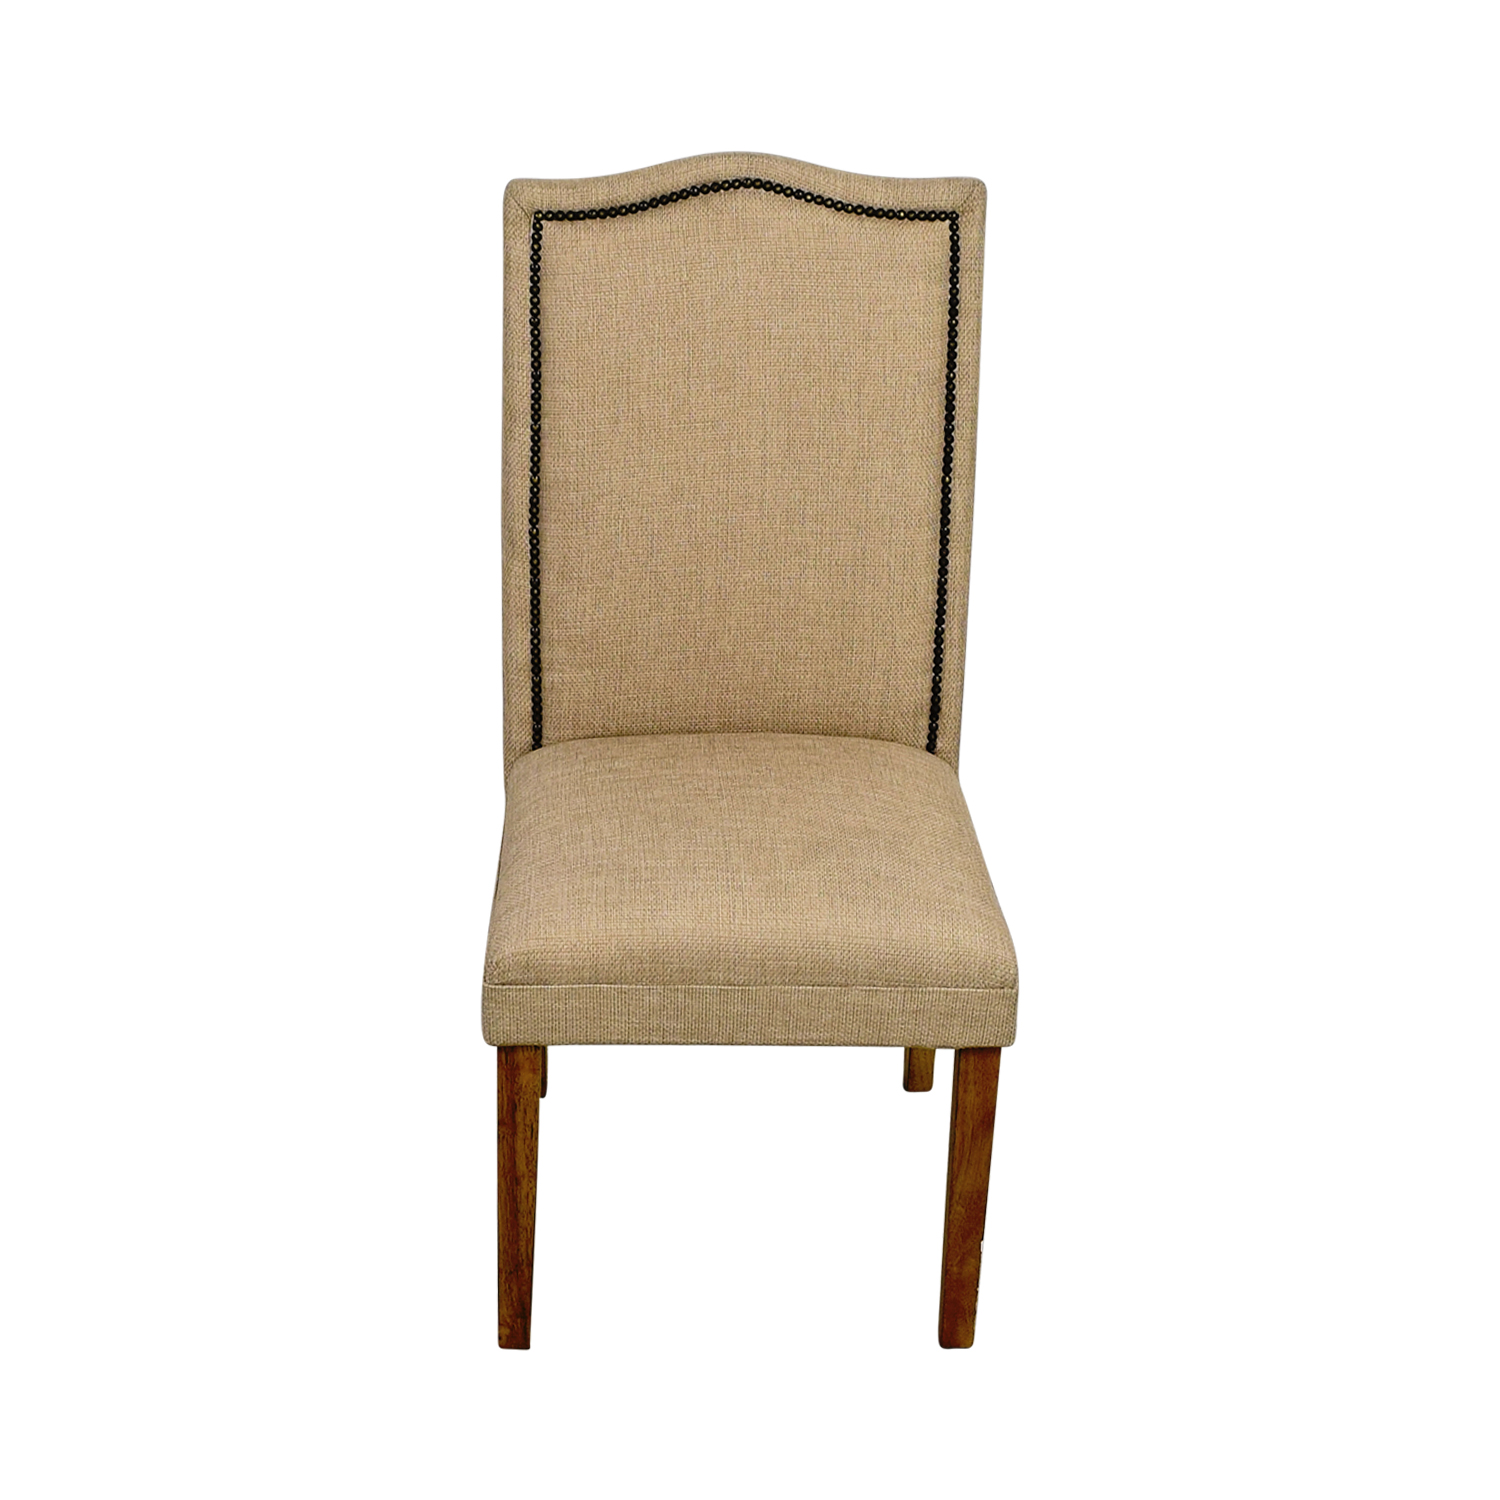 Beige High Back Chair with Nailhead Accent used